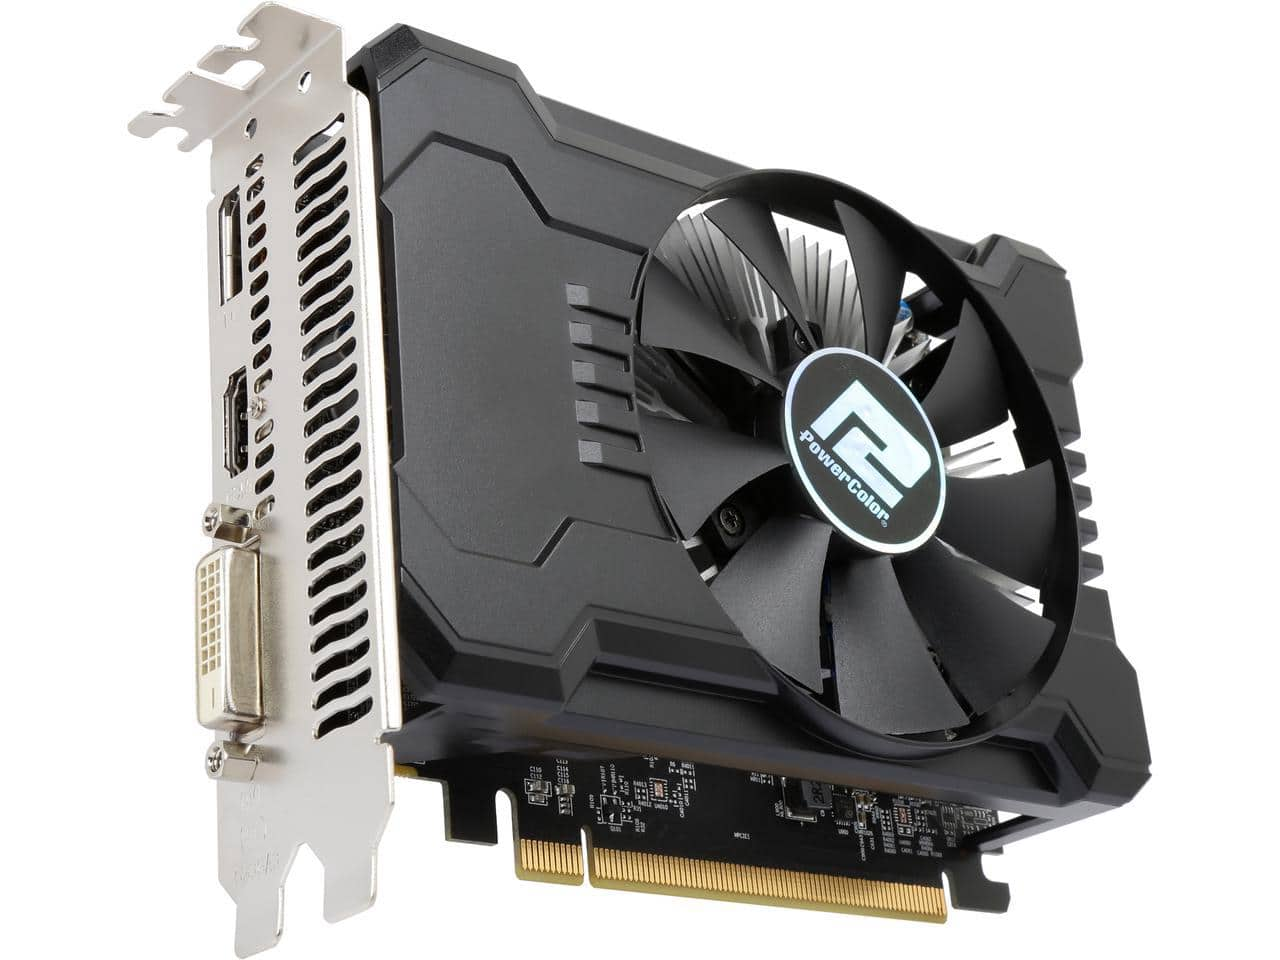 PowerColor Radeon RX 560 2GB - $79.99 AR/AC ($109.99 - $20 rebate - $10 w/ Masterpass coupon: MPBTS17)